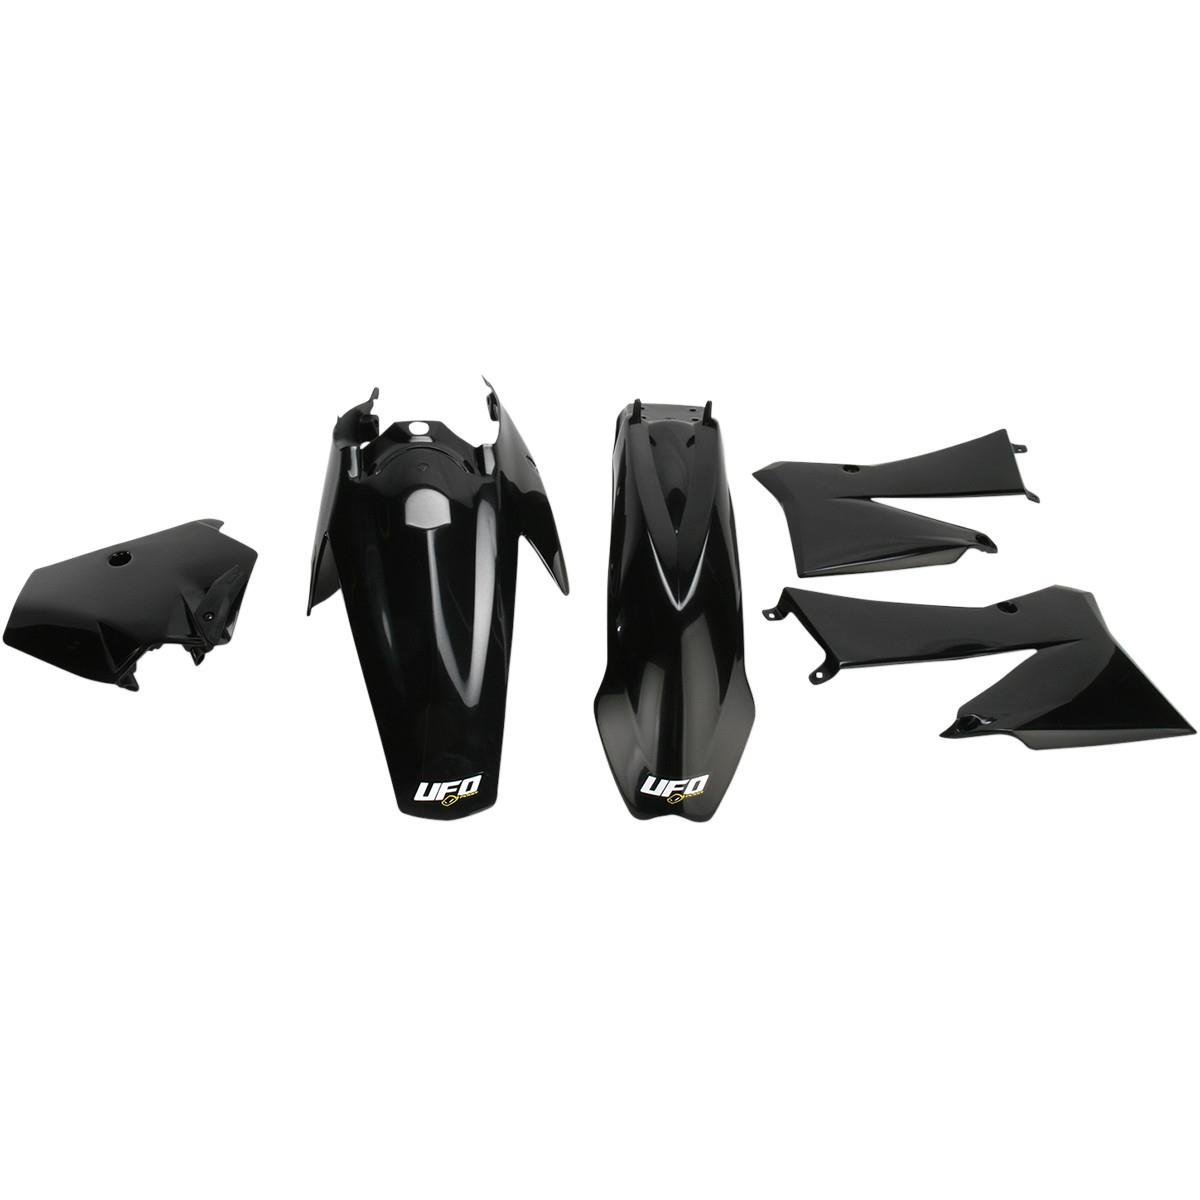 UFO Plastics Complete Body Kit Black KTM 85 SX 06-11